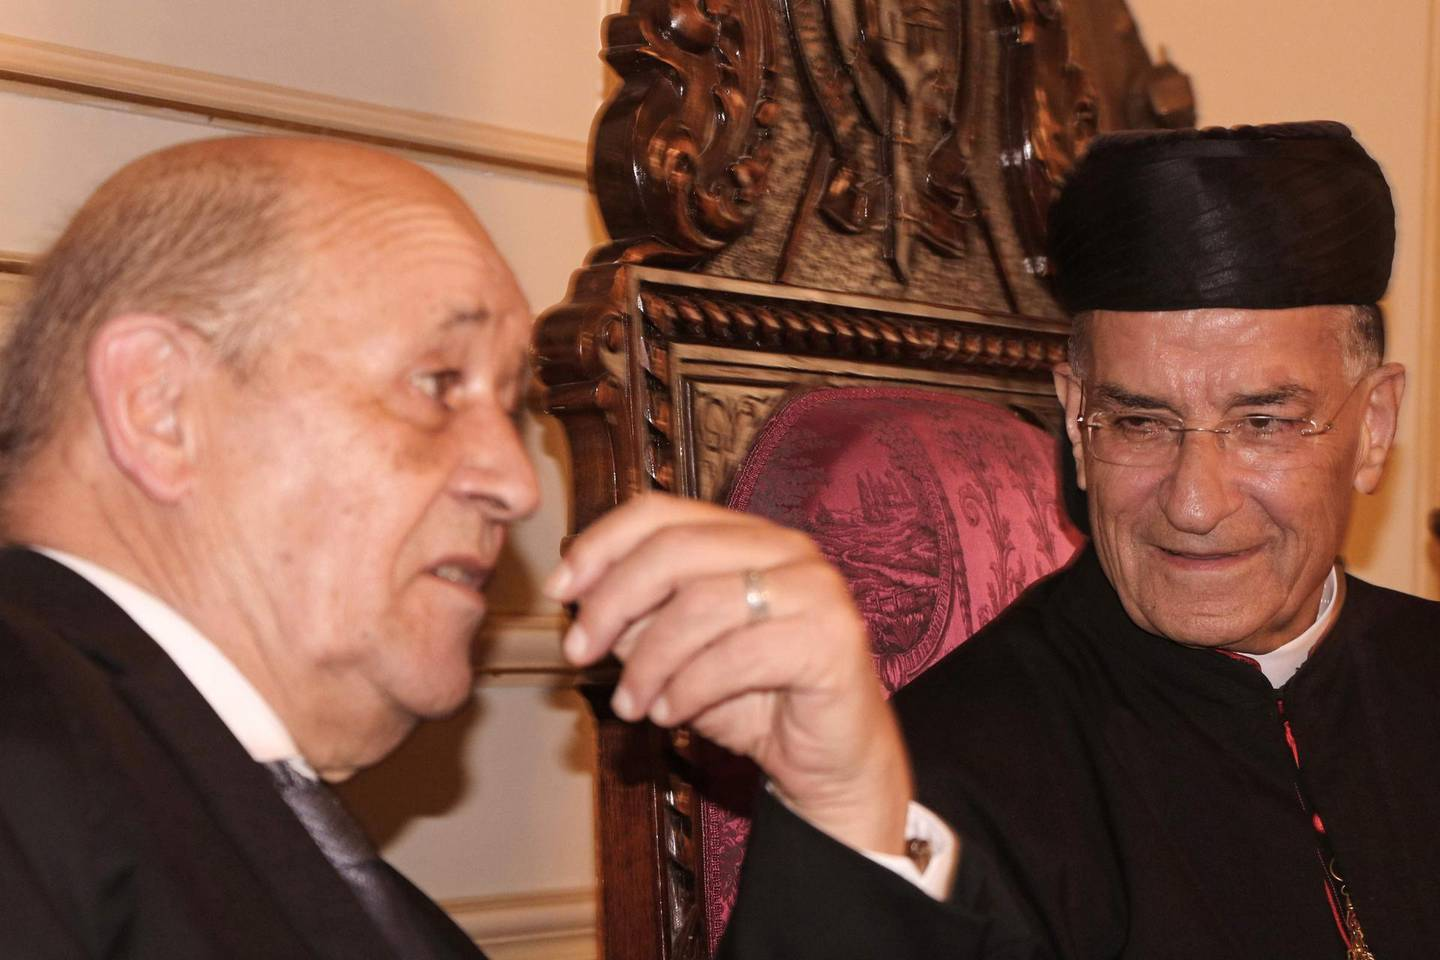 Lebanon's Christian Maronite patriarch Beshara Rai (R) meets with France's Foreign Minister Jean-Yves Le Drian in Bekerke north of Beirut on July 23, 2020. France's top diplomat was on a two-day visit to Lebanon in the first such trip in recent months by a high-ranking foreign politician to the crisis-hit country hoping for an international bailout. / AFP / -